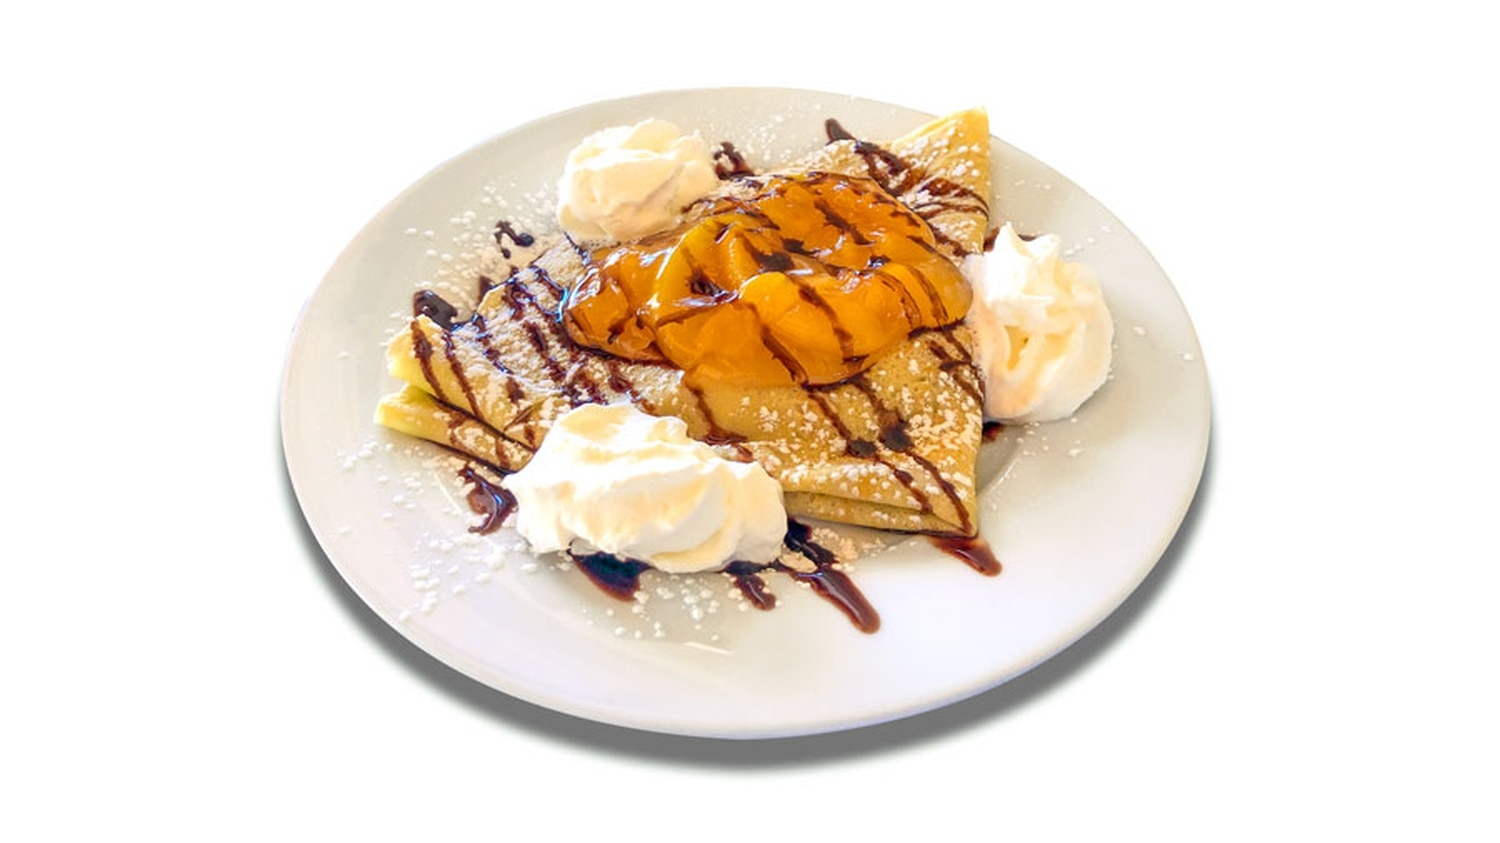 Holy peach crepe, Batman—Sagche's Coffee House offerings are out of control.